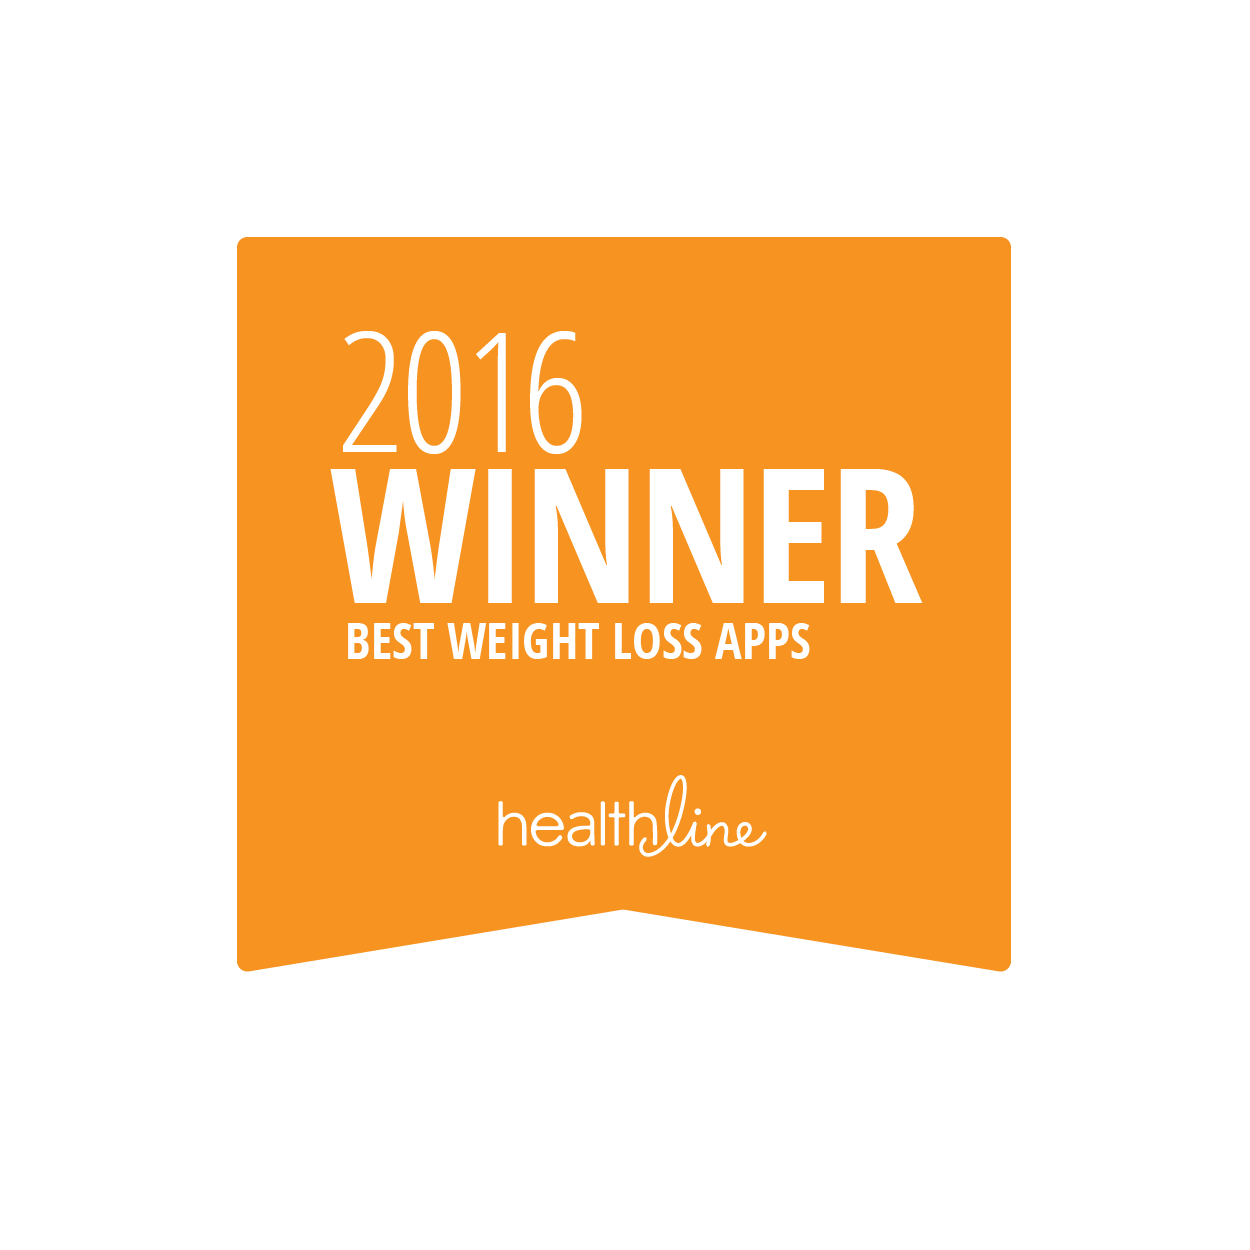 The Best Weight Loss iPhone and Android Apps of 2016